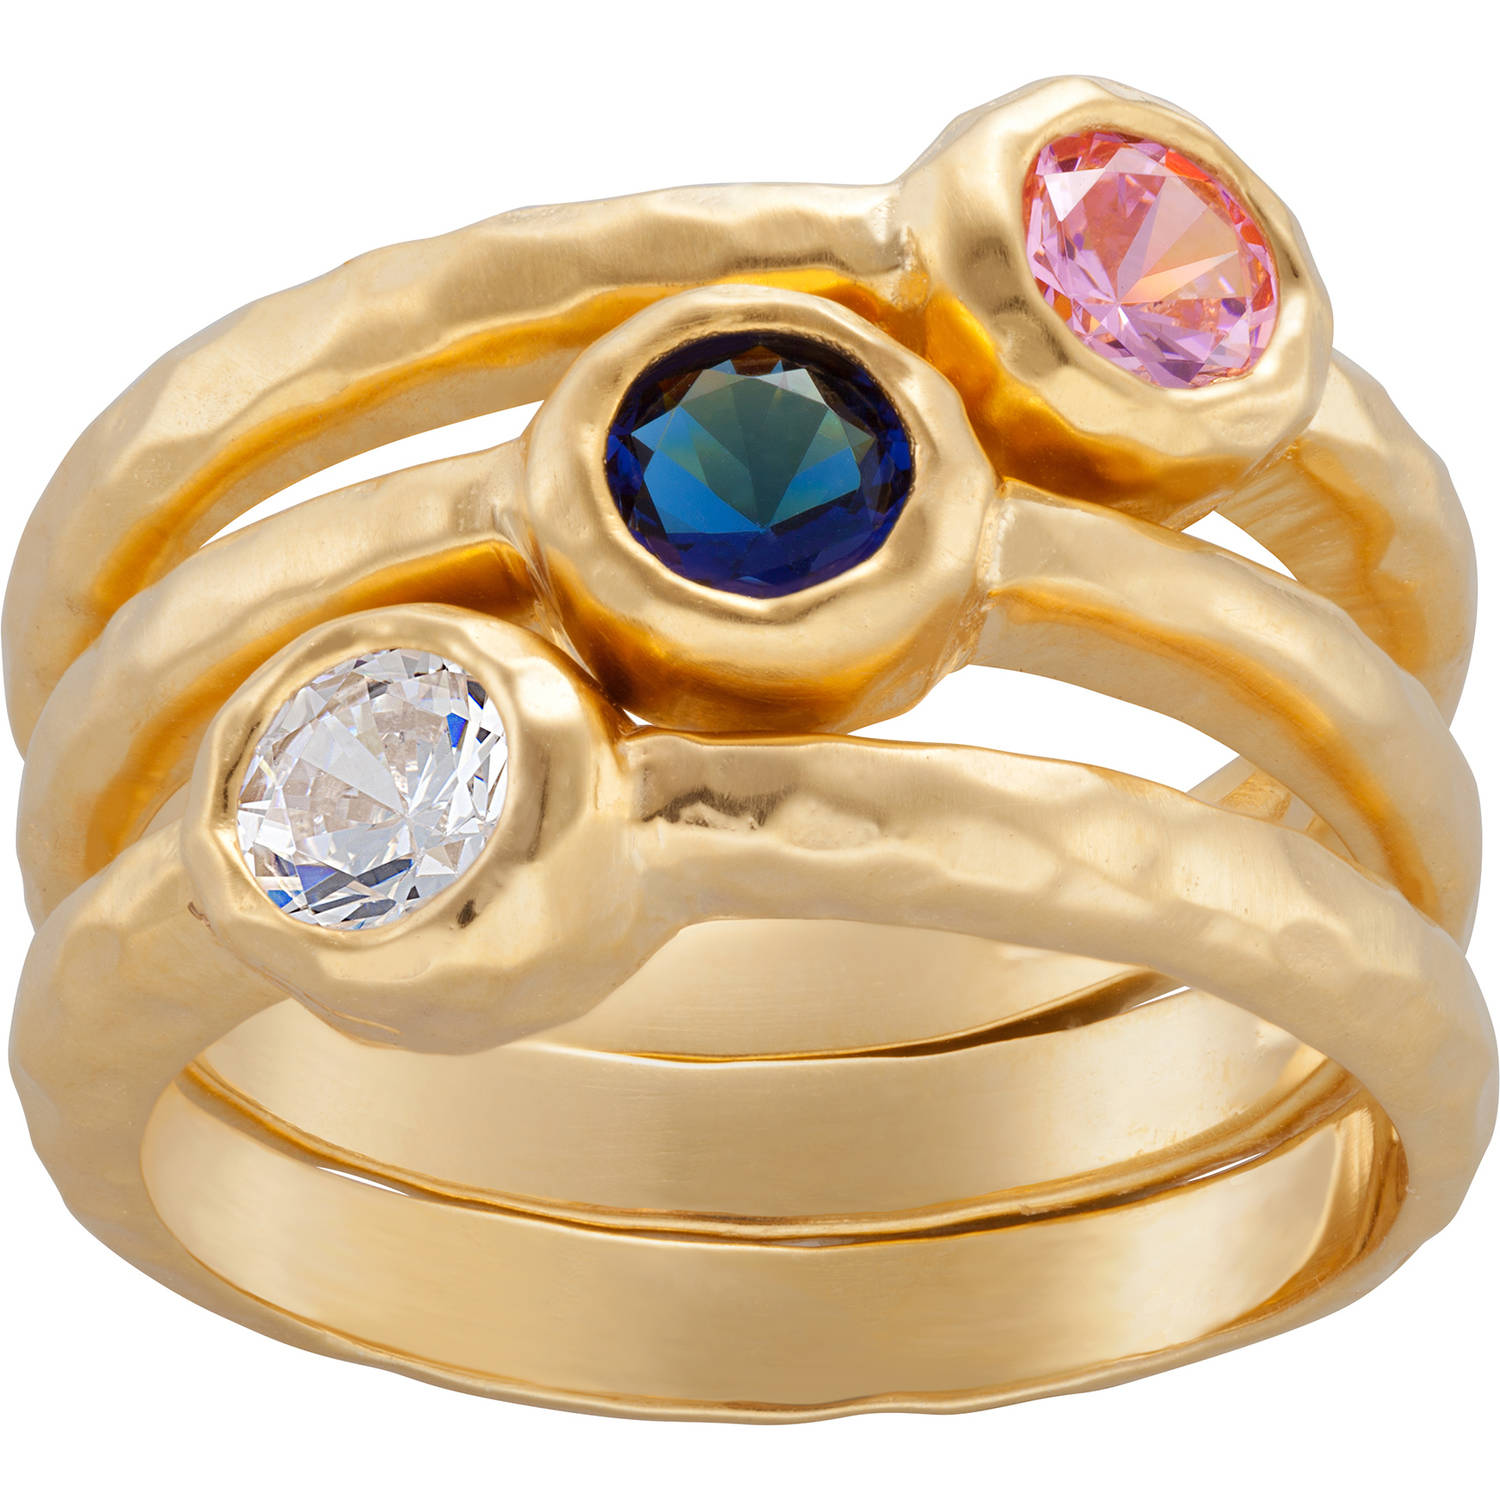 Personalized Sandra Magsamen Antique Gold over Sterling Silver Stackable Birthstone Ring Set